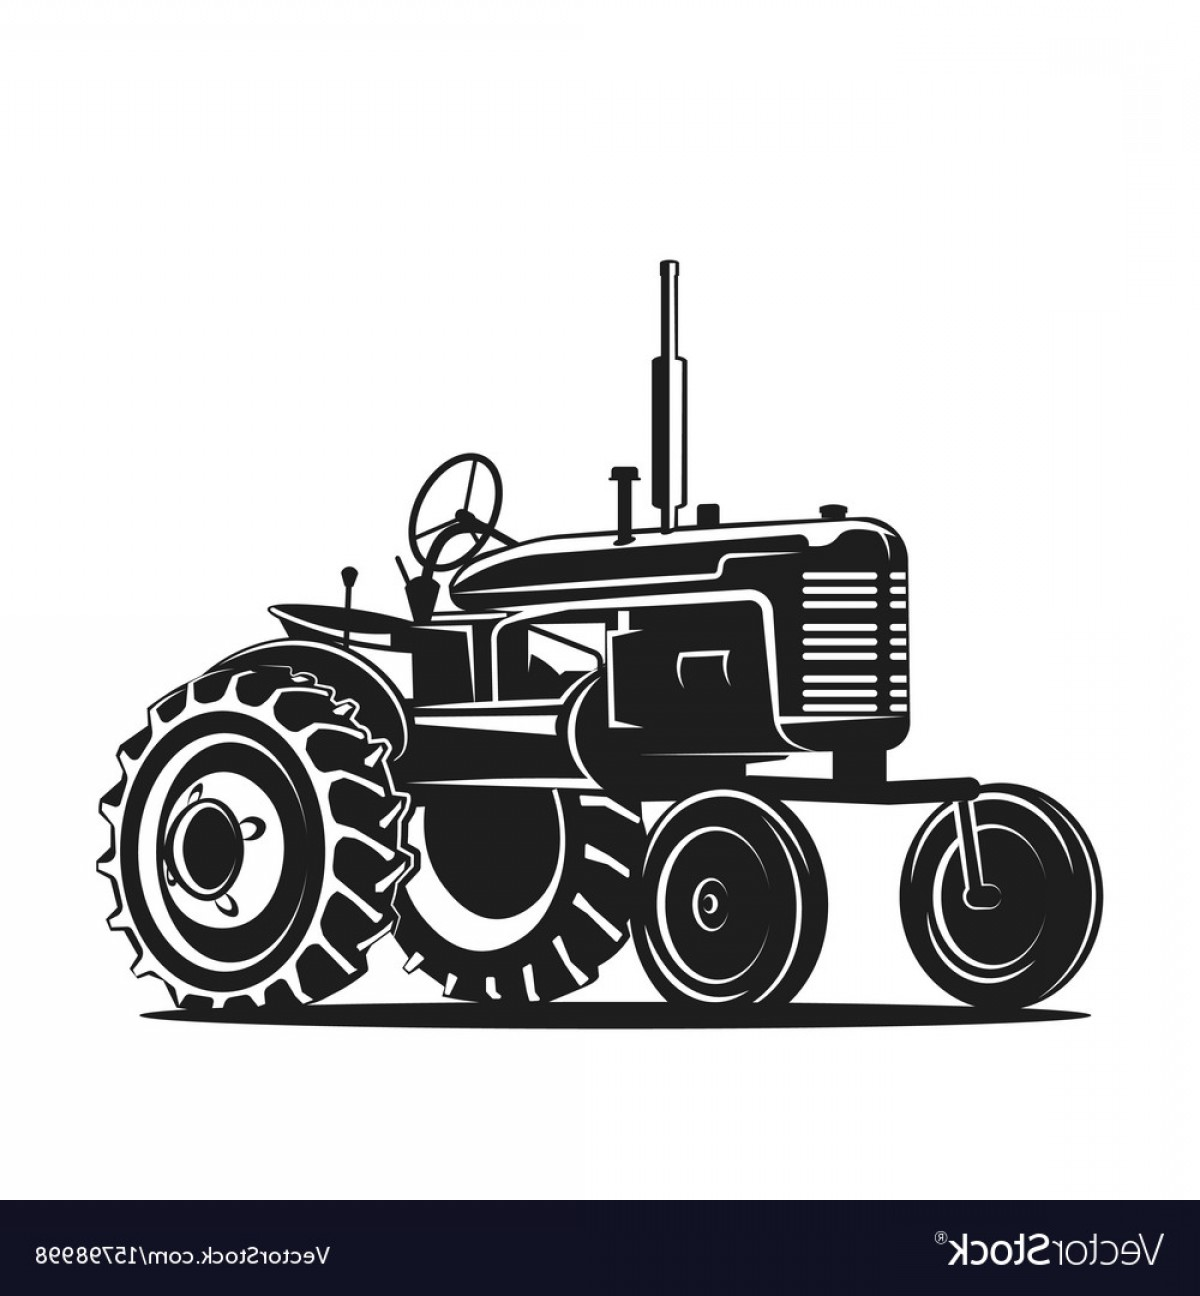 Tractor Silhouette Vector Art: Black Old Tractor Silhouette On White Background Vector